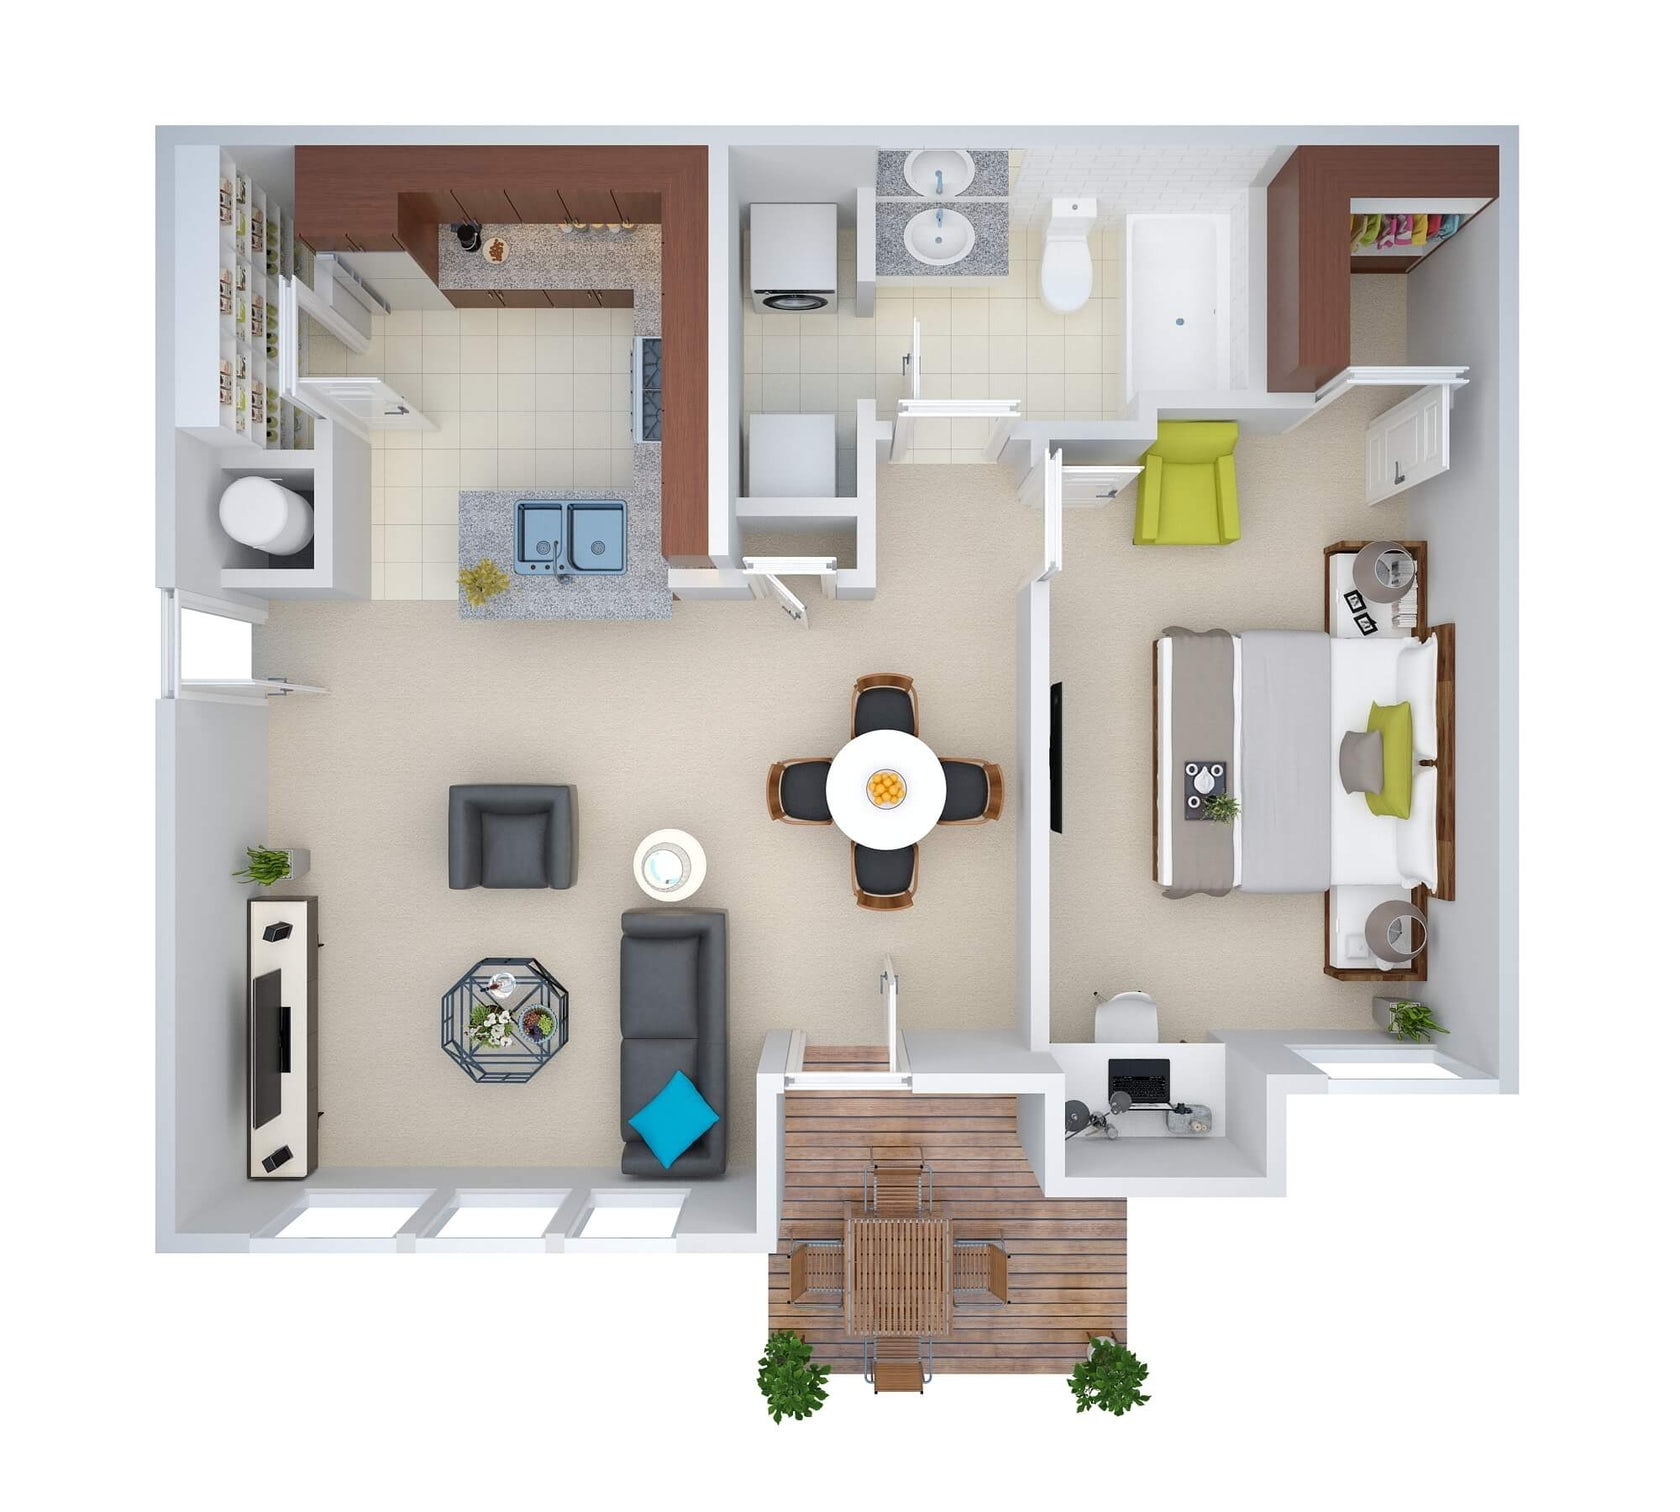 2d floor plan to 3d model services architizer for Turn floor plan into 3d model